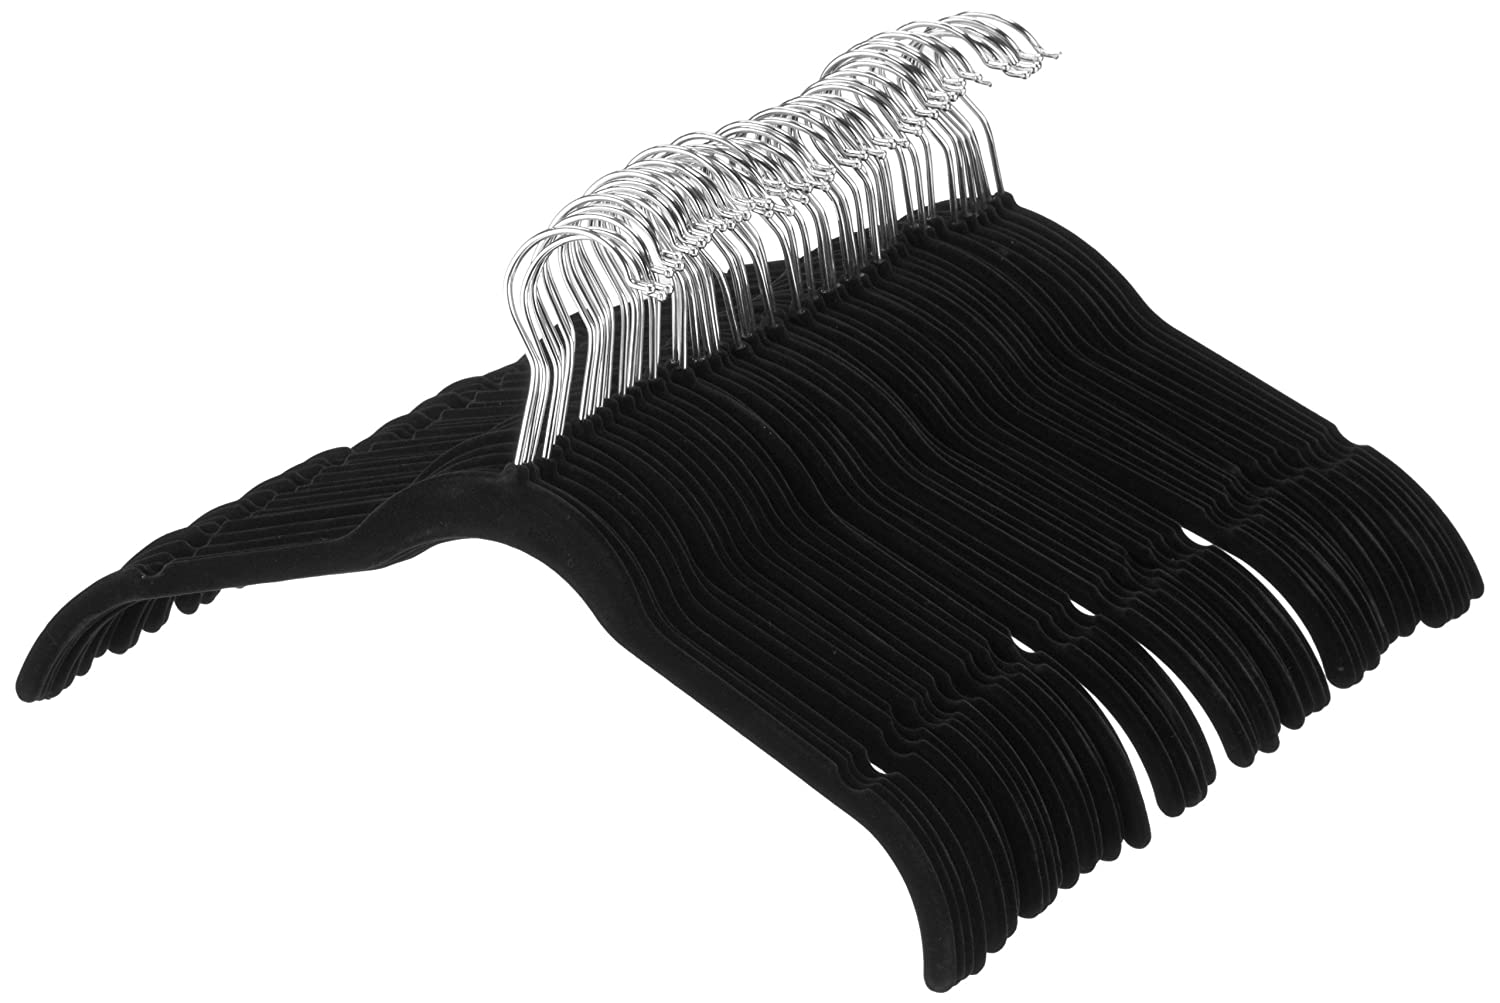 AmazonBasics Velvet Shirt/Dress Hangers - 100-Pack, Black